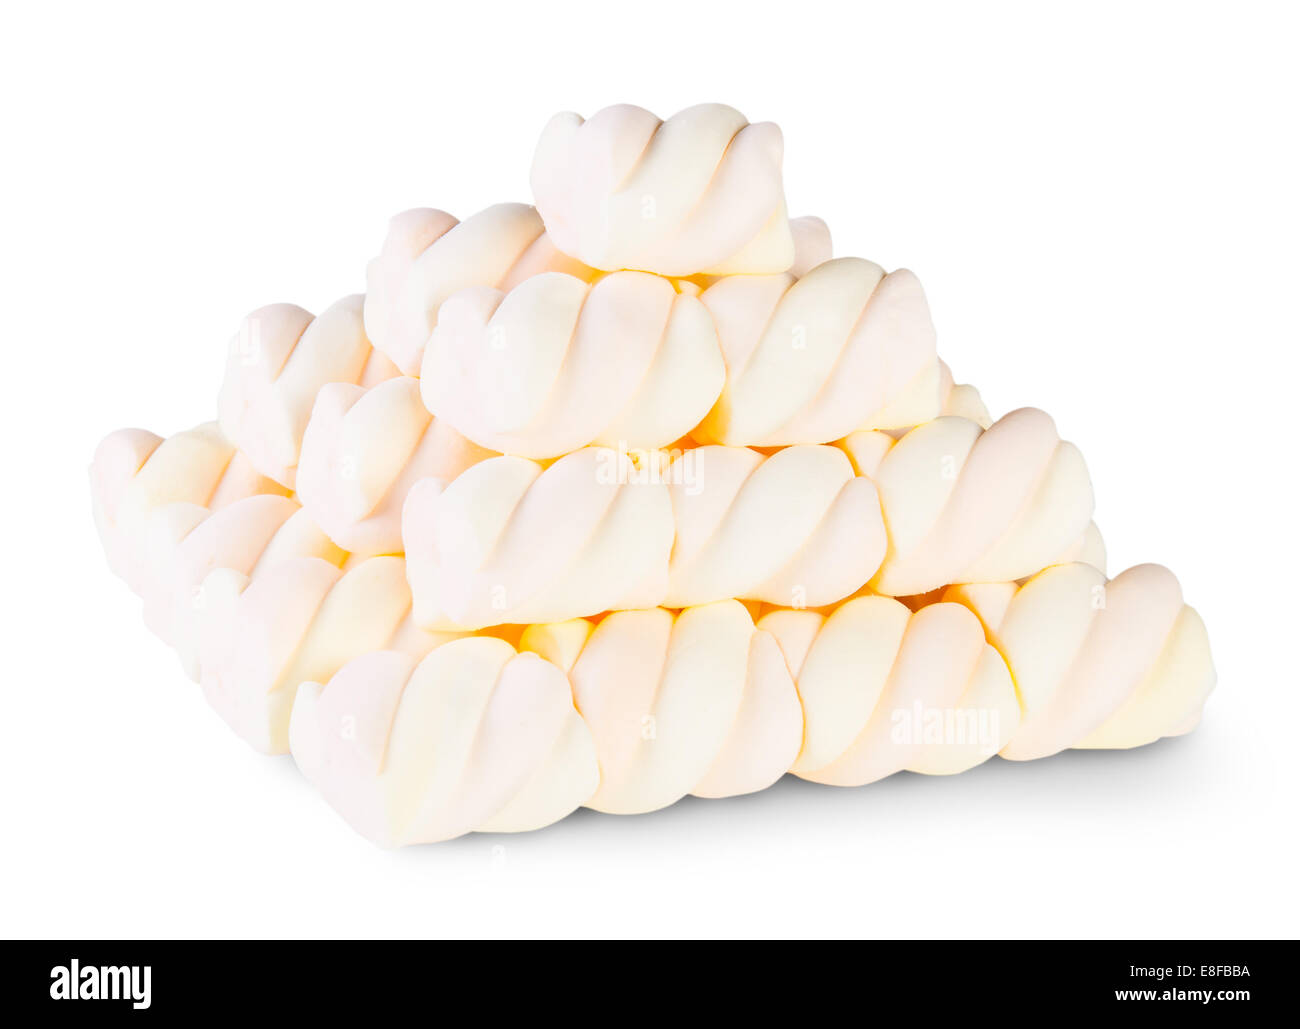 Pyramid The Spiral Marshmallow Isolated On White Background Stock Photo